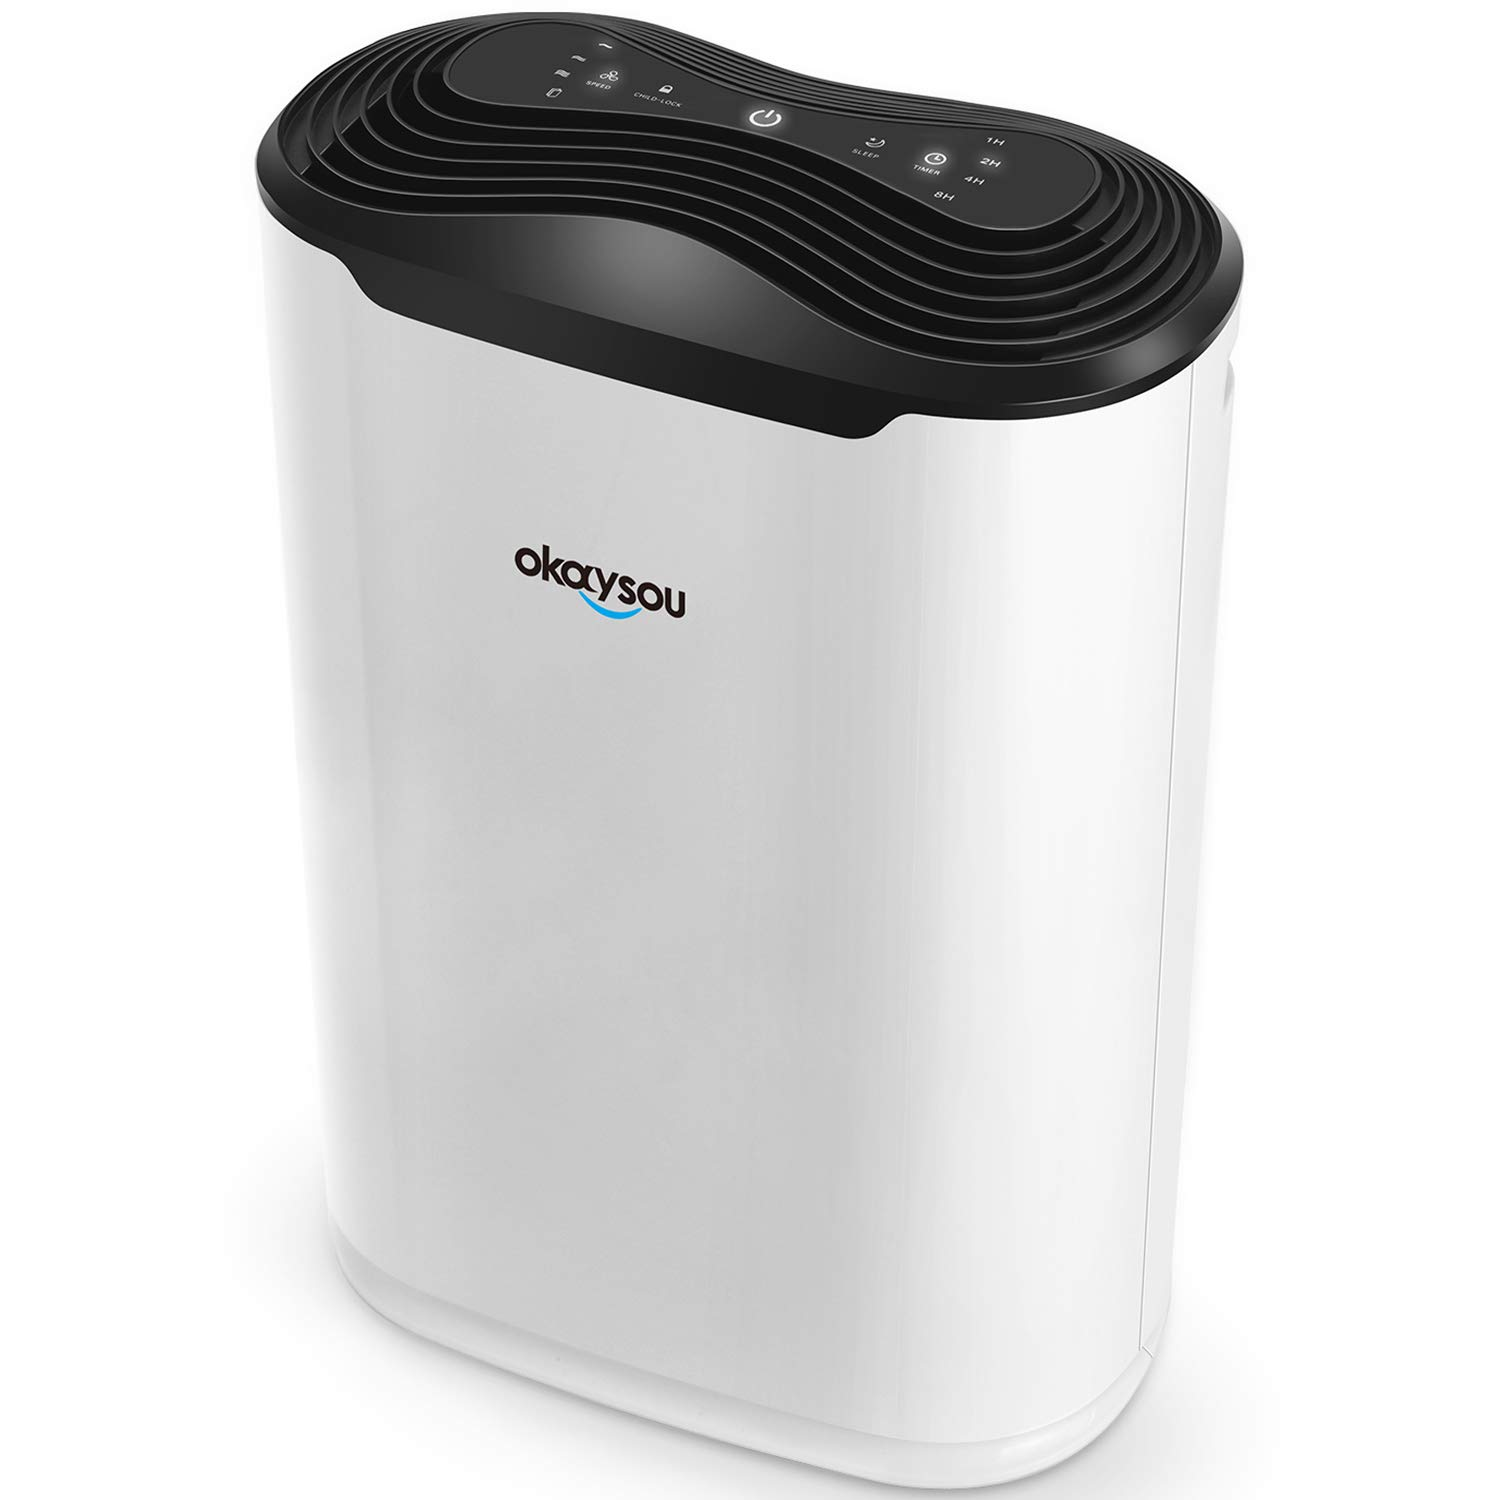 Okaysou AirMax8L 19.4'' 5-in-1 Air Purifier for Home Large Room, True HEPA Filter Quiet Air Cleaner Plus DUO-Filter, Full Room Odor Remover for Smoke, Dust, Pollen, VOCs and More, Auto Off Timer, White